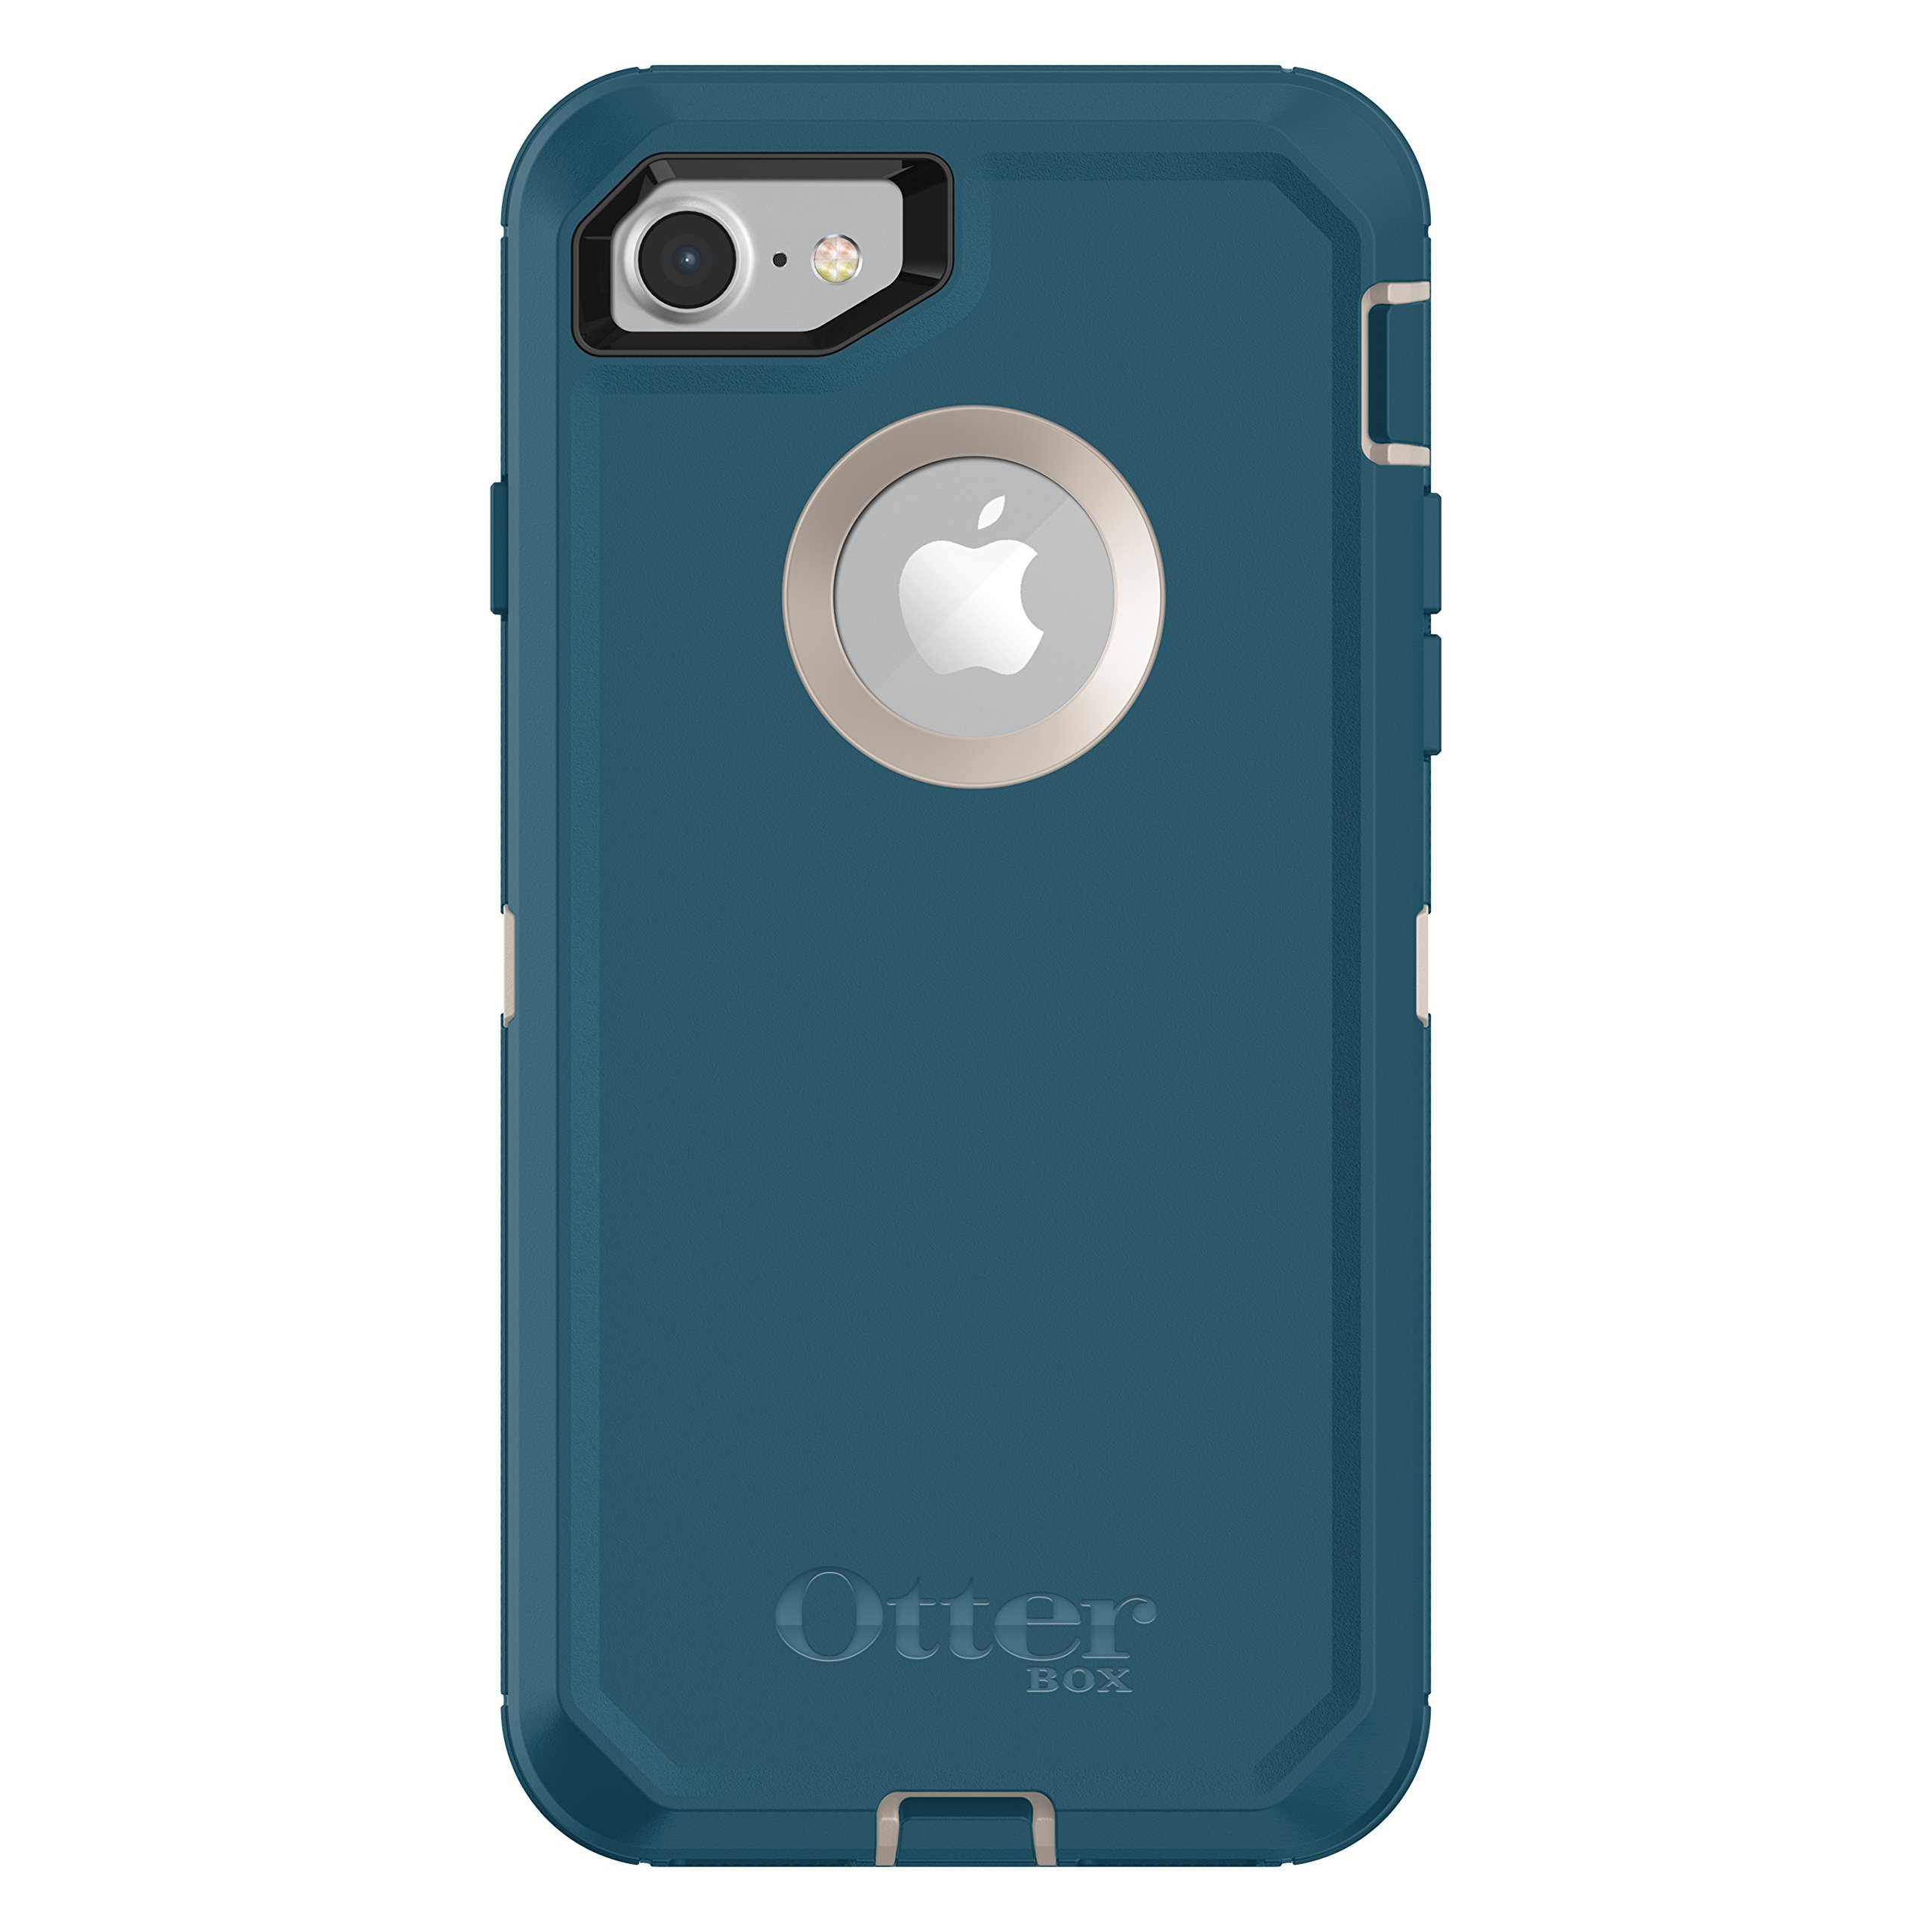 OtterBox Defender Series Case for iPhone 8 & iPhone 7 (Not Plus) - Retail Packaging - Big Sur (Pale Beige/Corsair)